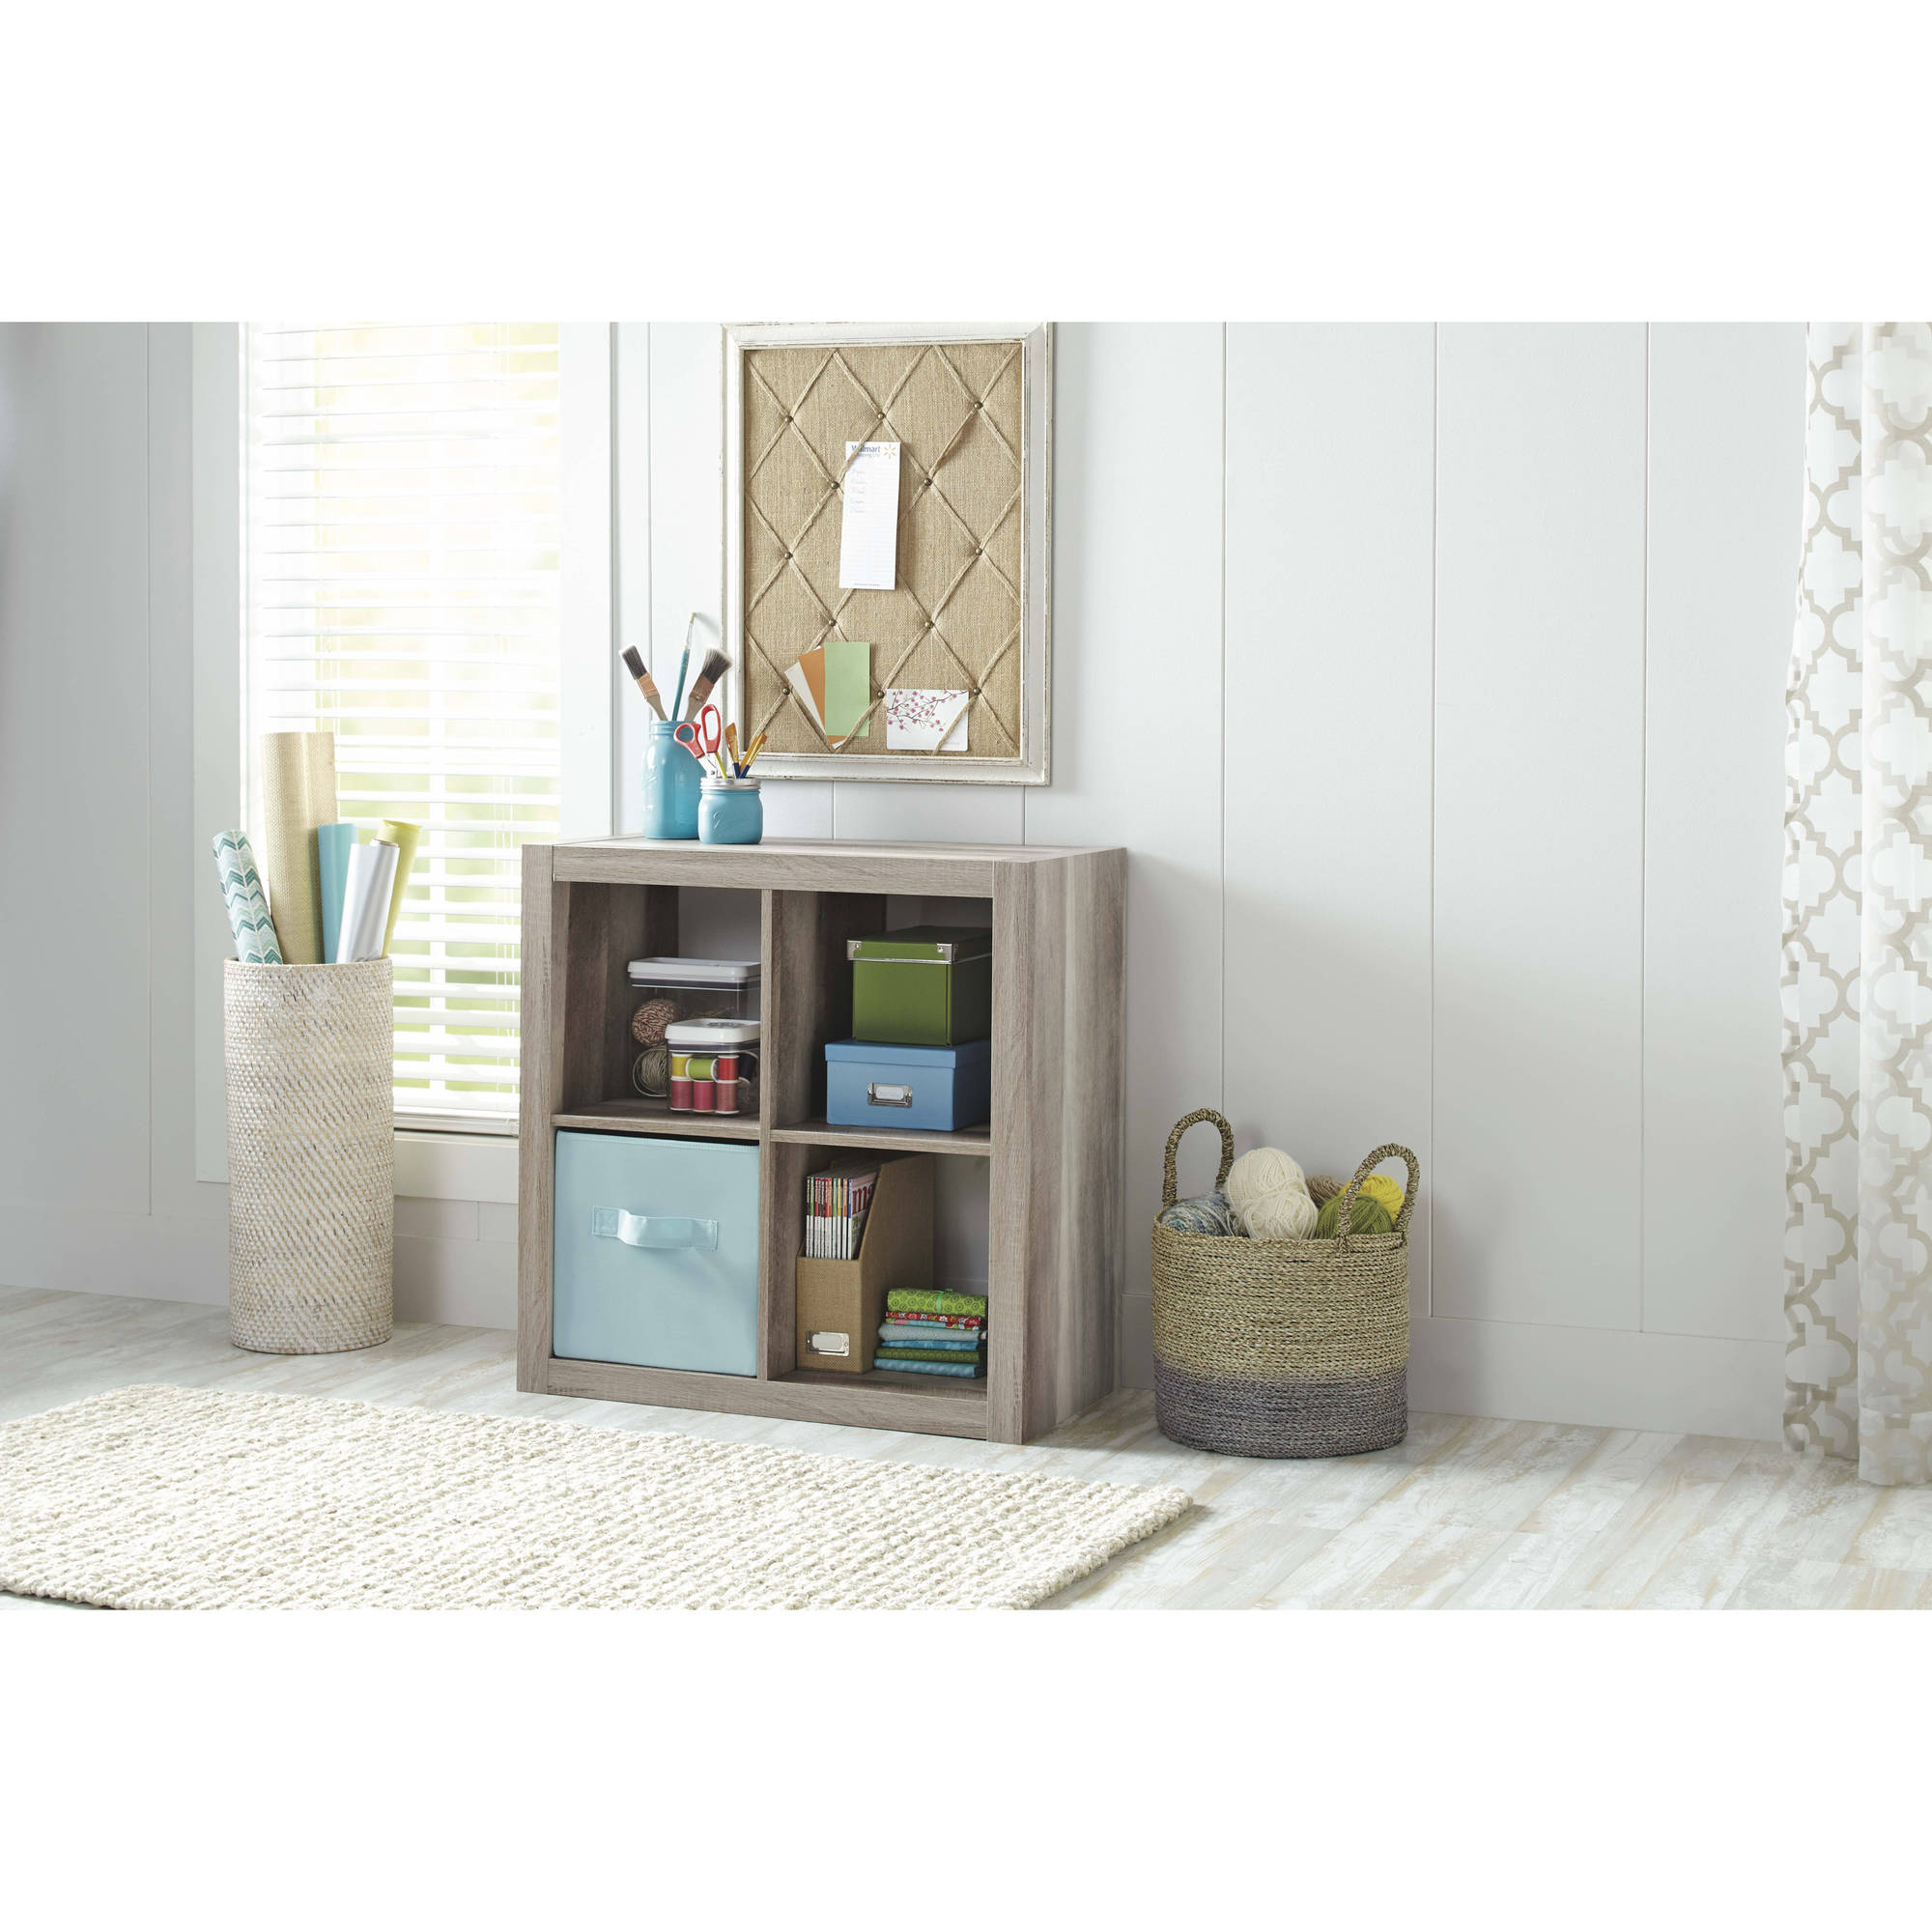 Better Homes and Gardens 4 Cube Organizer, Rustic Gray Finish